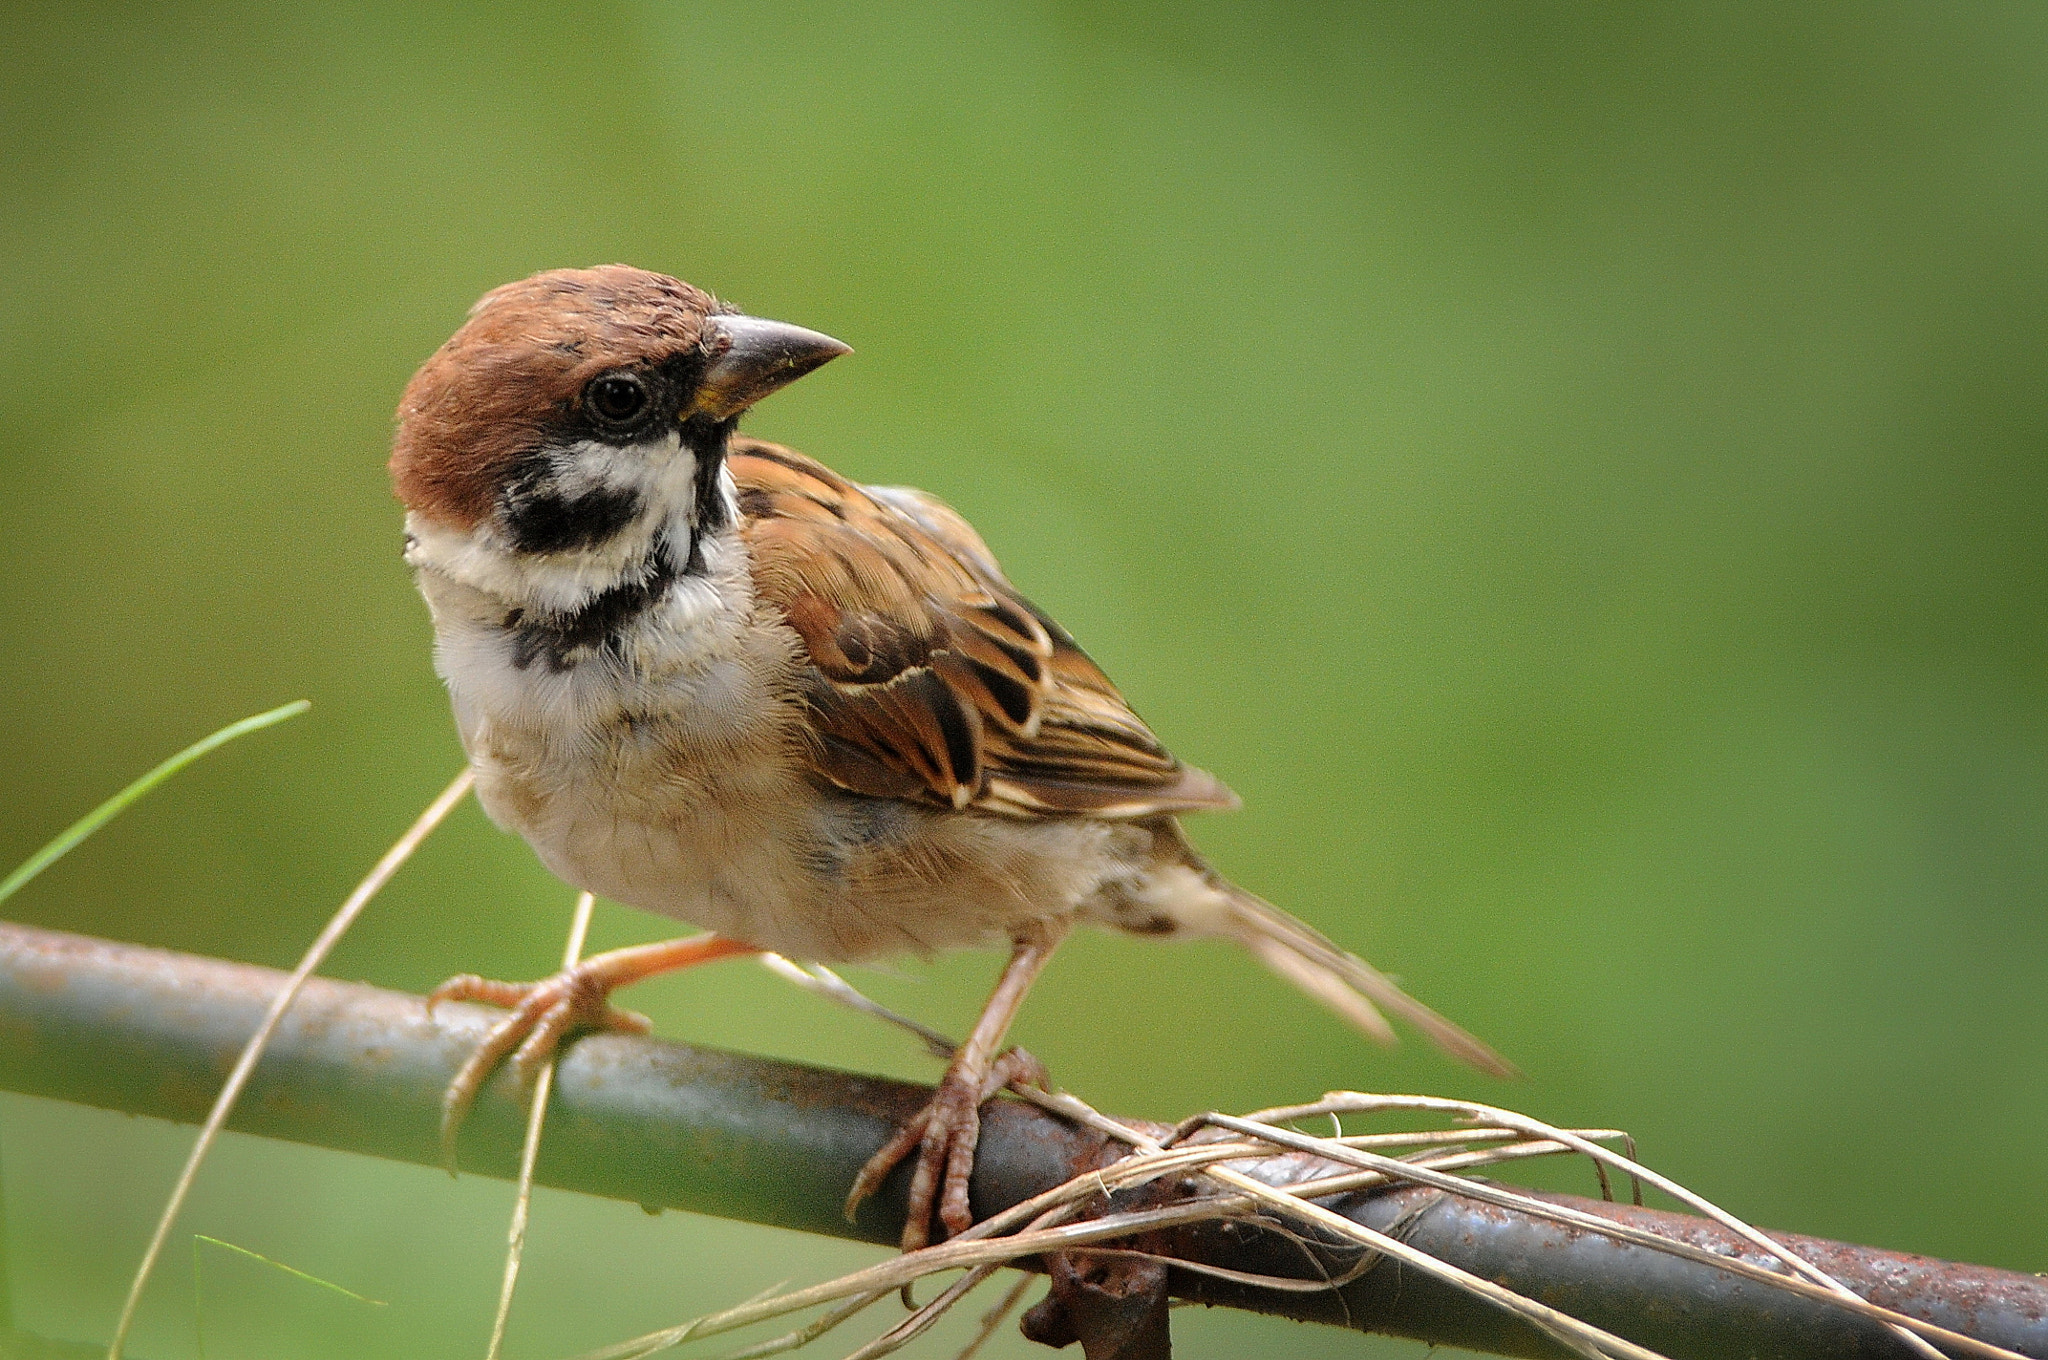 Photograph Request of sparrow? by KEN OHSAWA on 500px